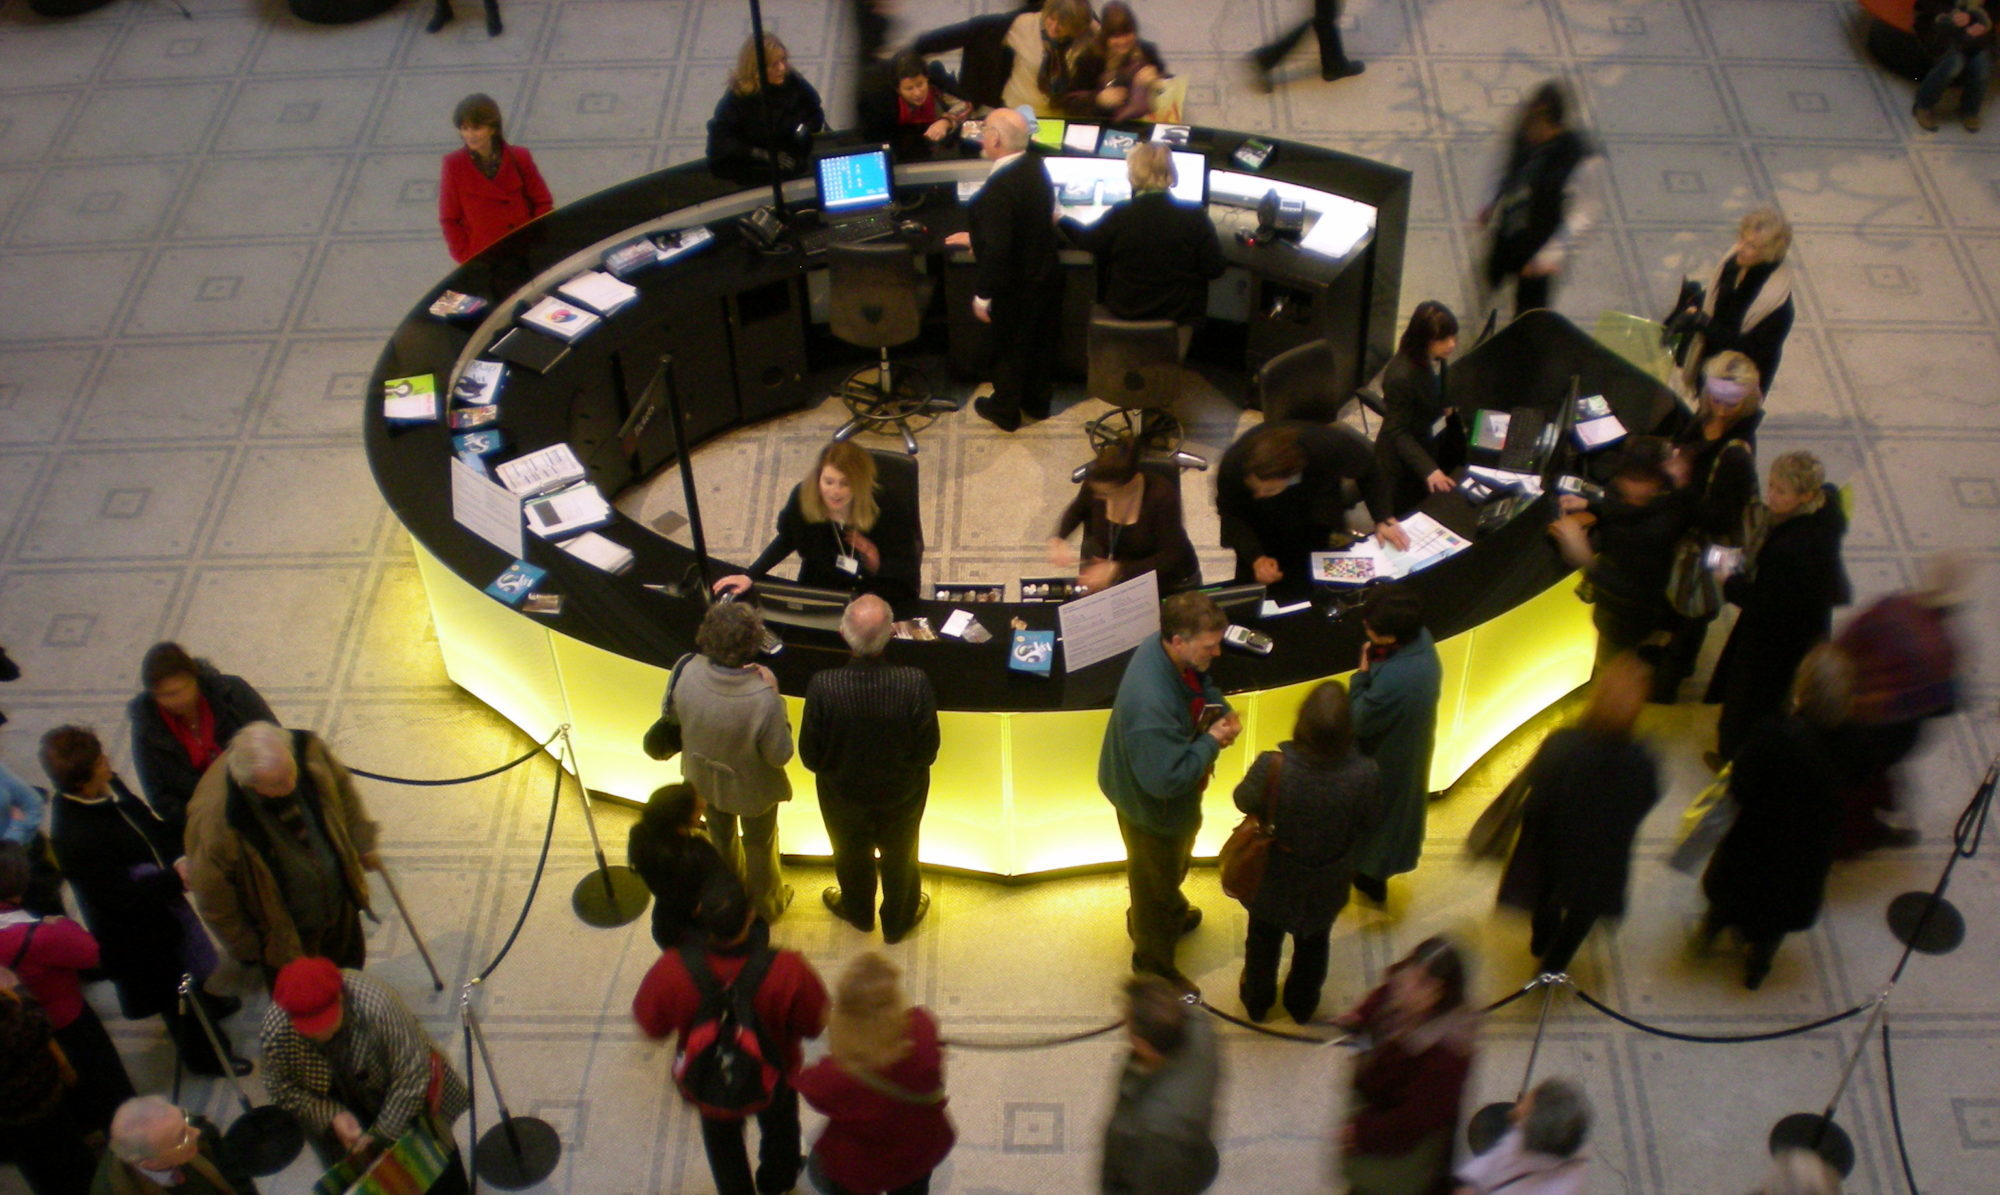 A crowded circular information desk in a museum lobby.